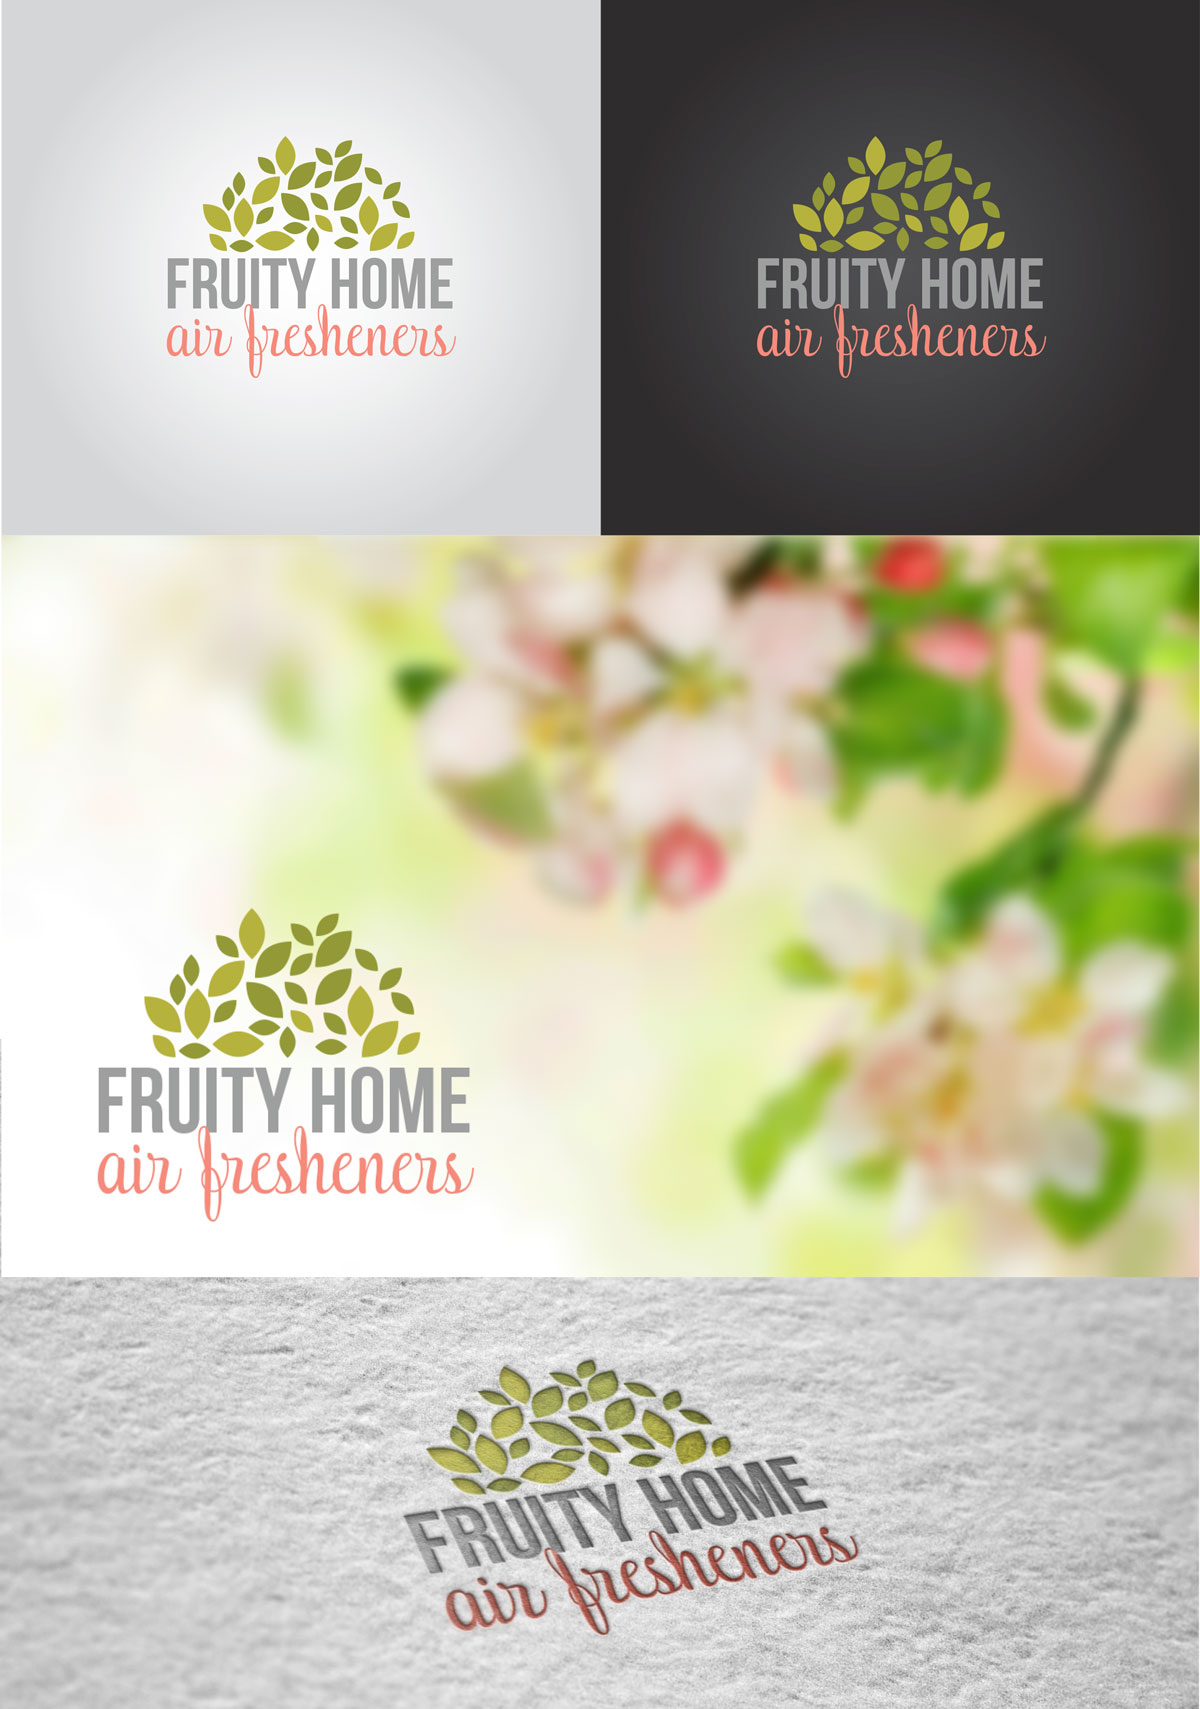 FRUITY HOME